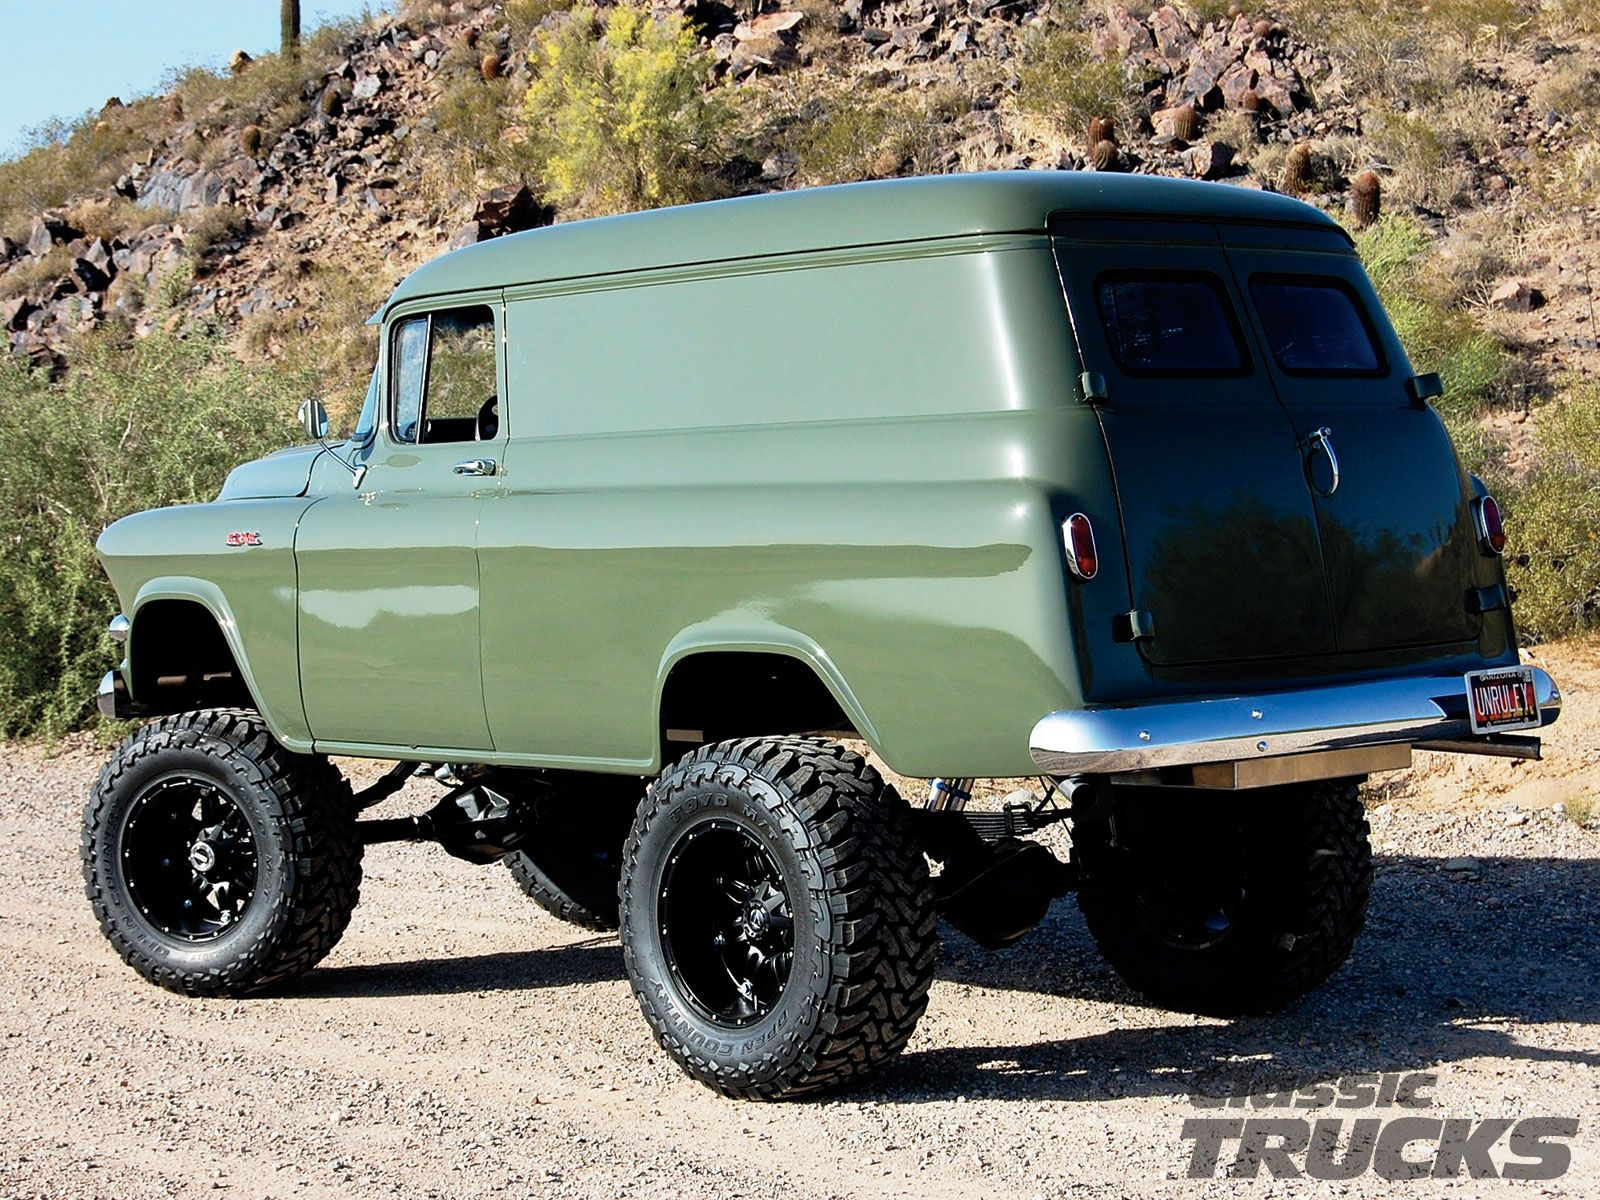 1957 Gmc Panel Truck The Ultimate Going Camping Or Put In Chevy 4x4 A Gun Rack And We Will Take On Zombie Hoards